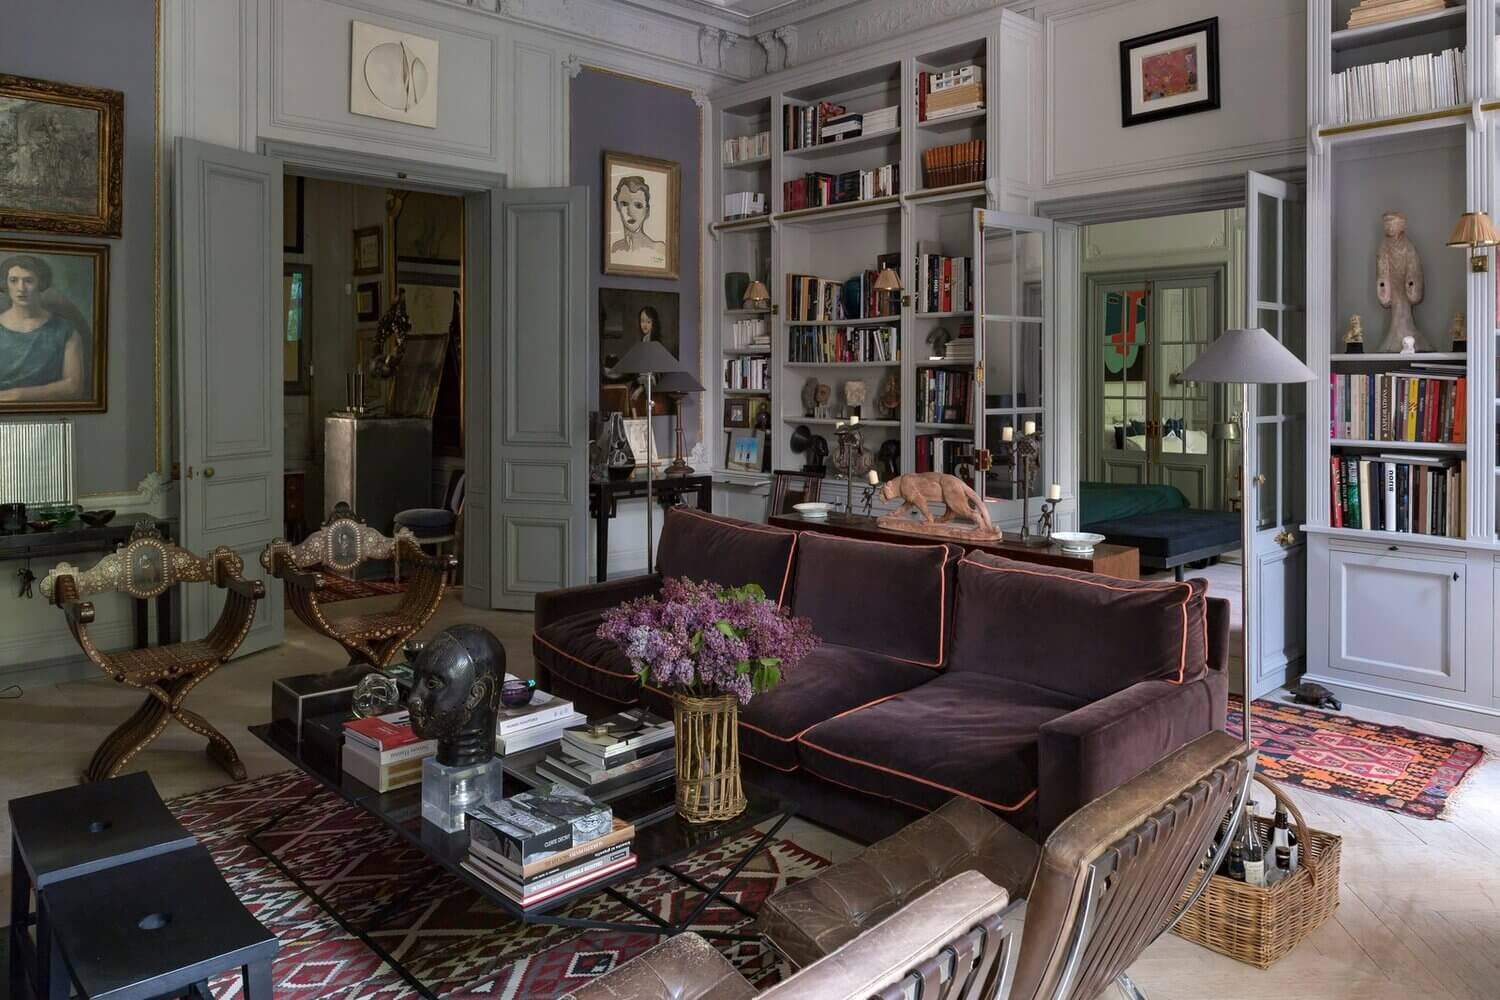 French Country Style In An Art-Filled Paris Home